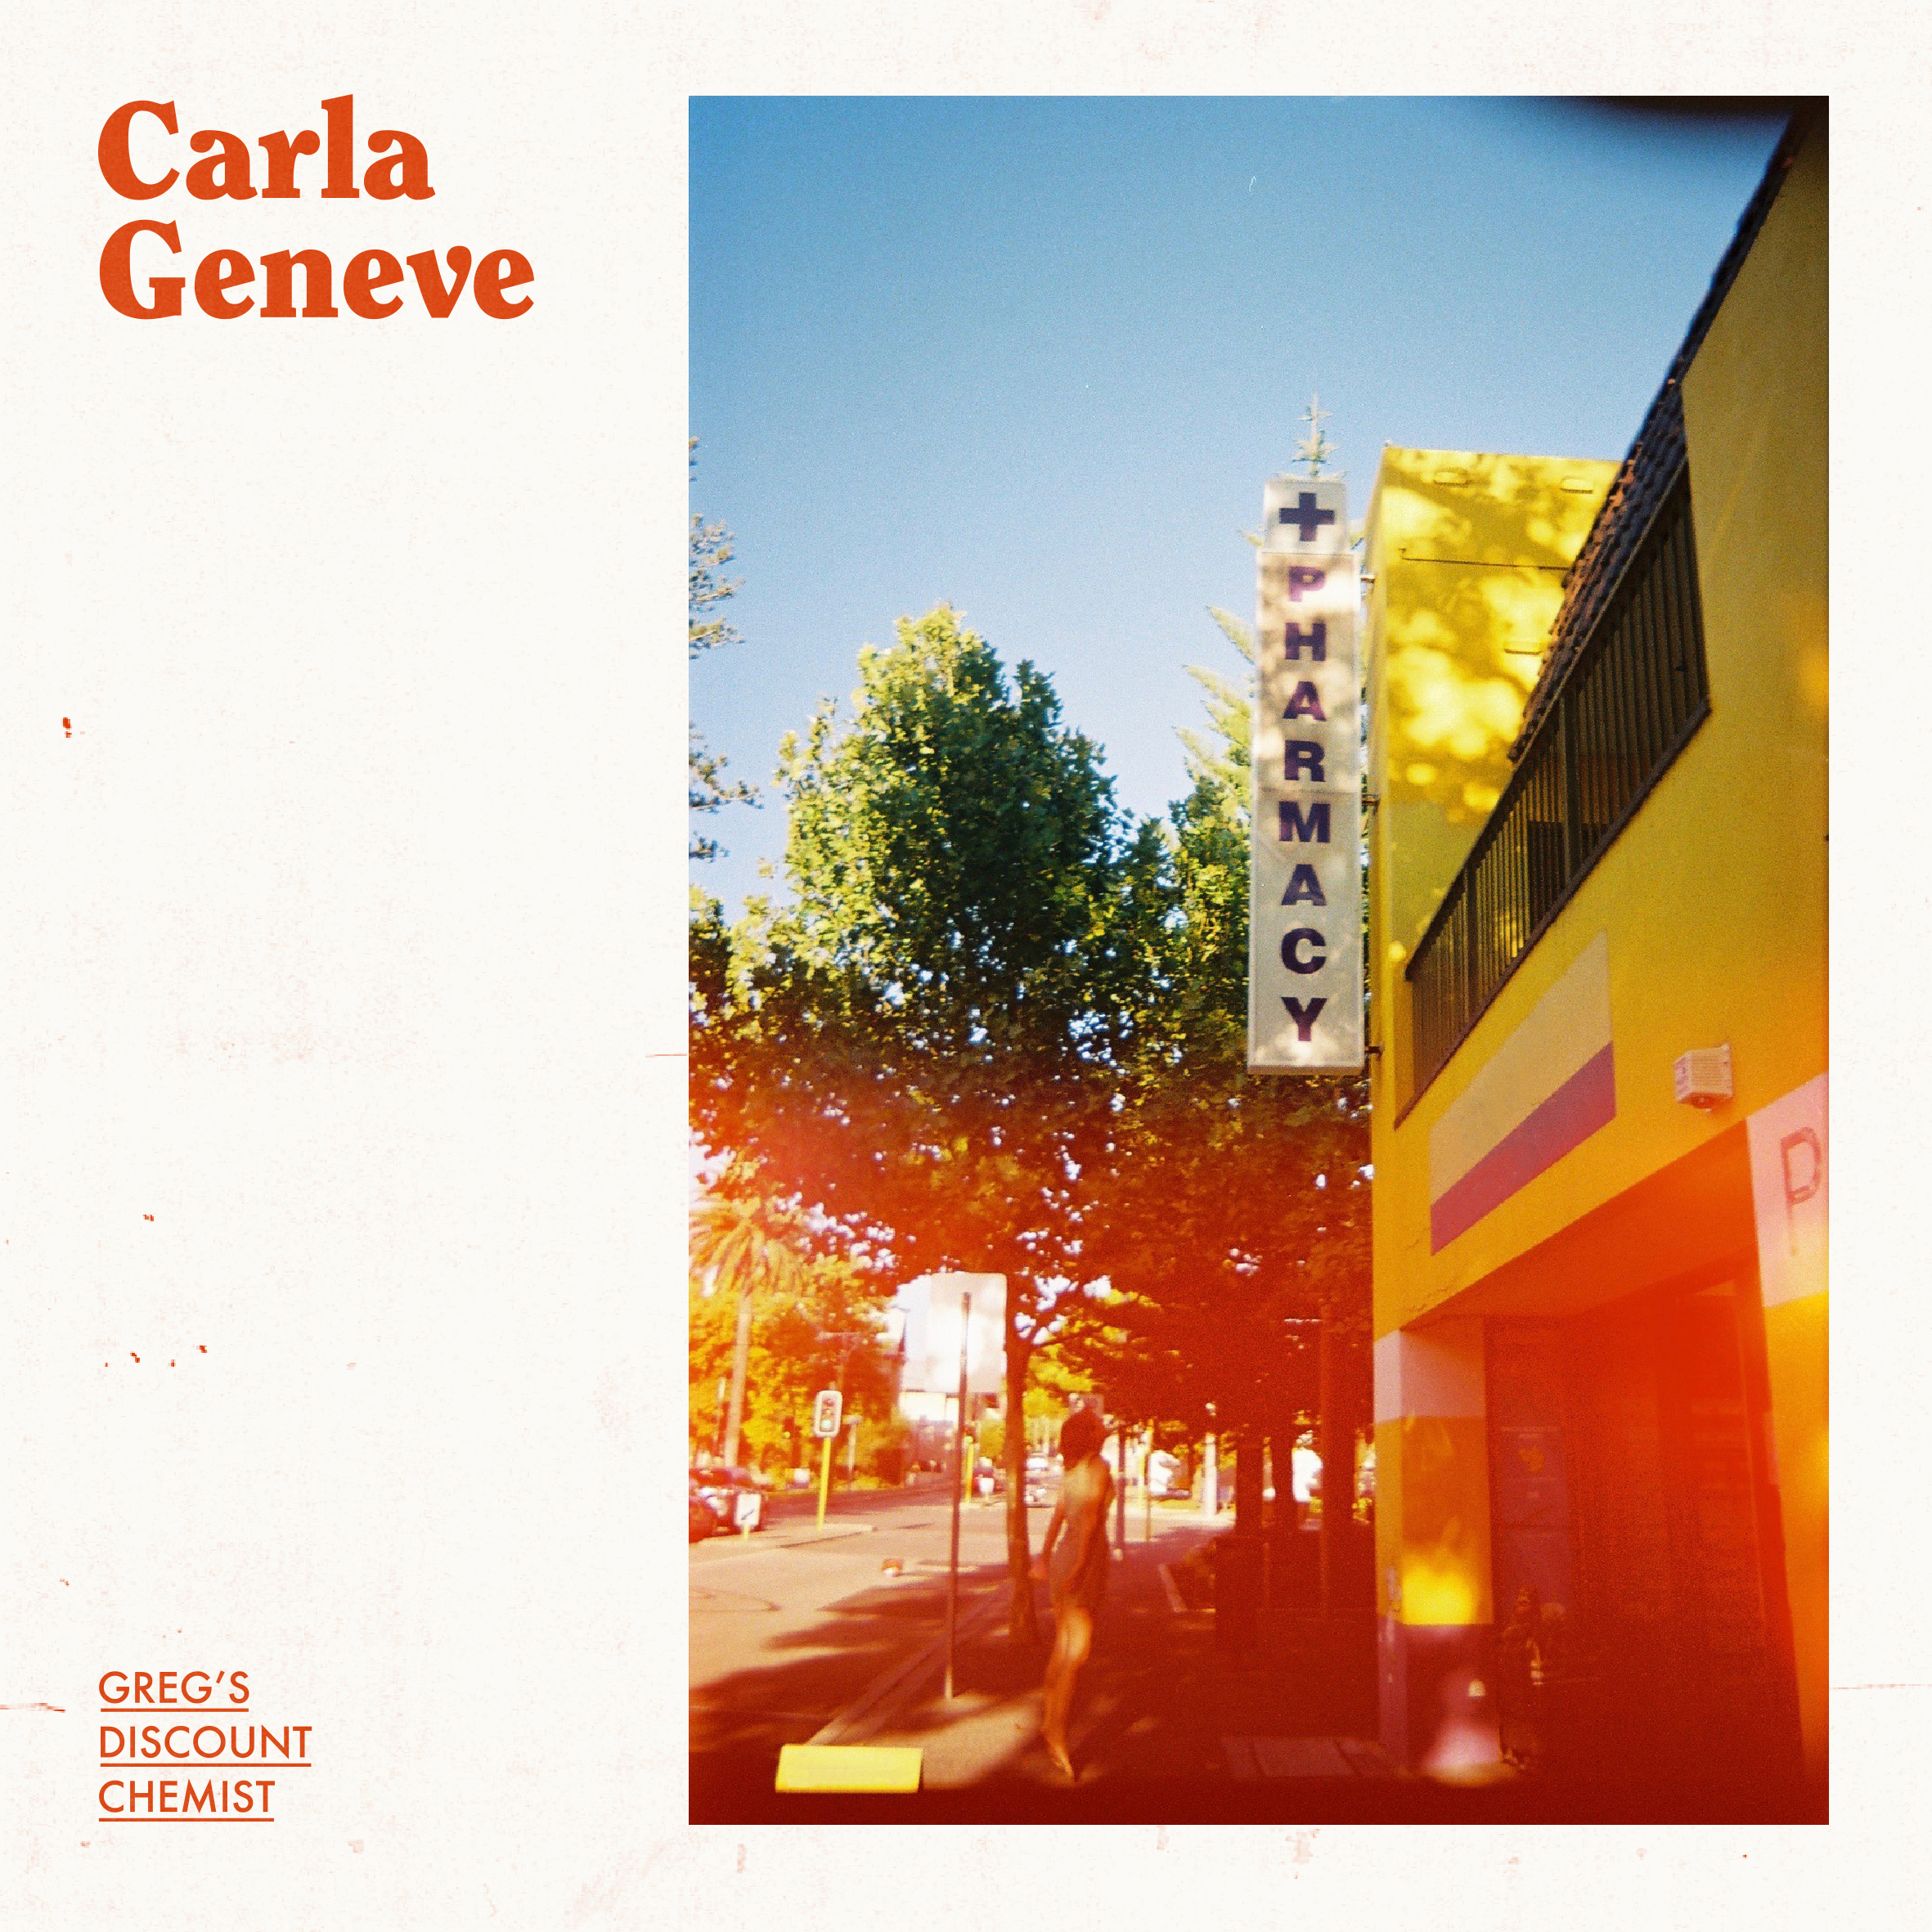 Carla_Geneve_Single_Cover copy.jpg